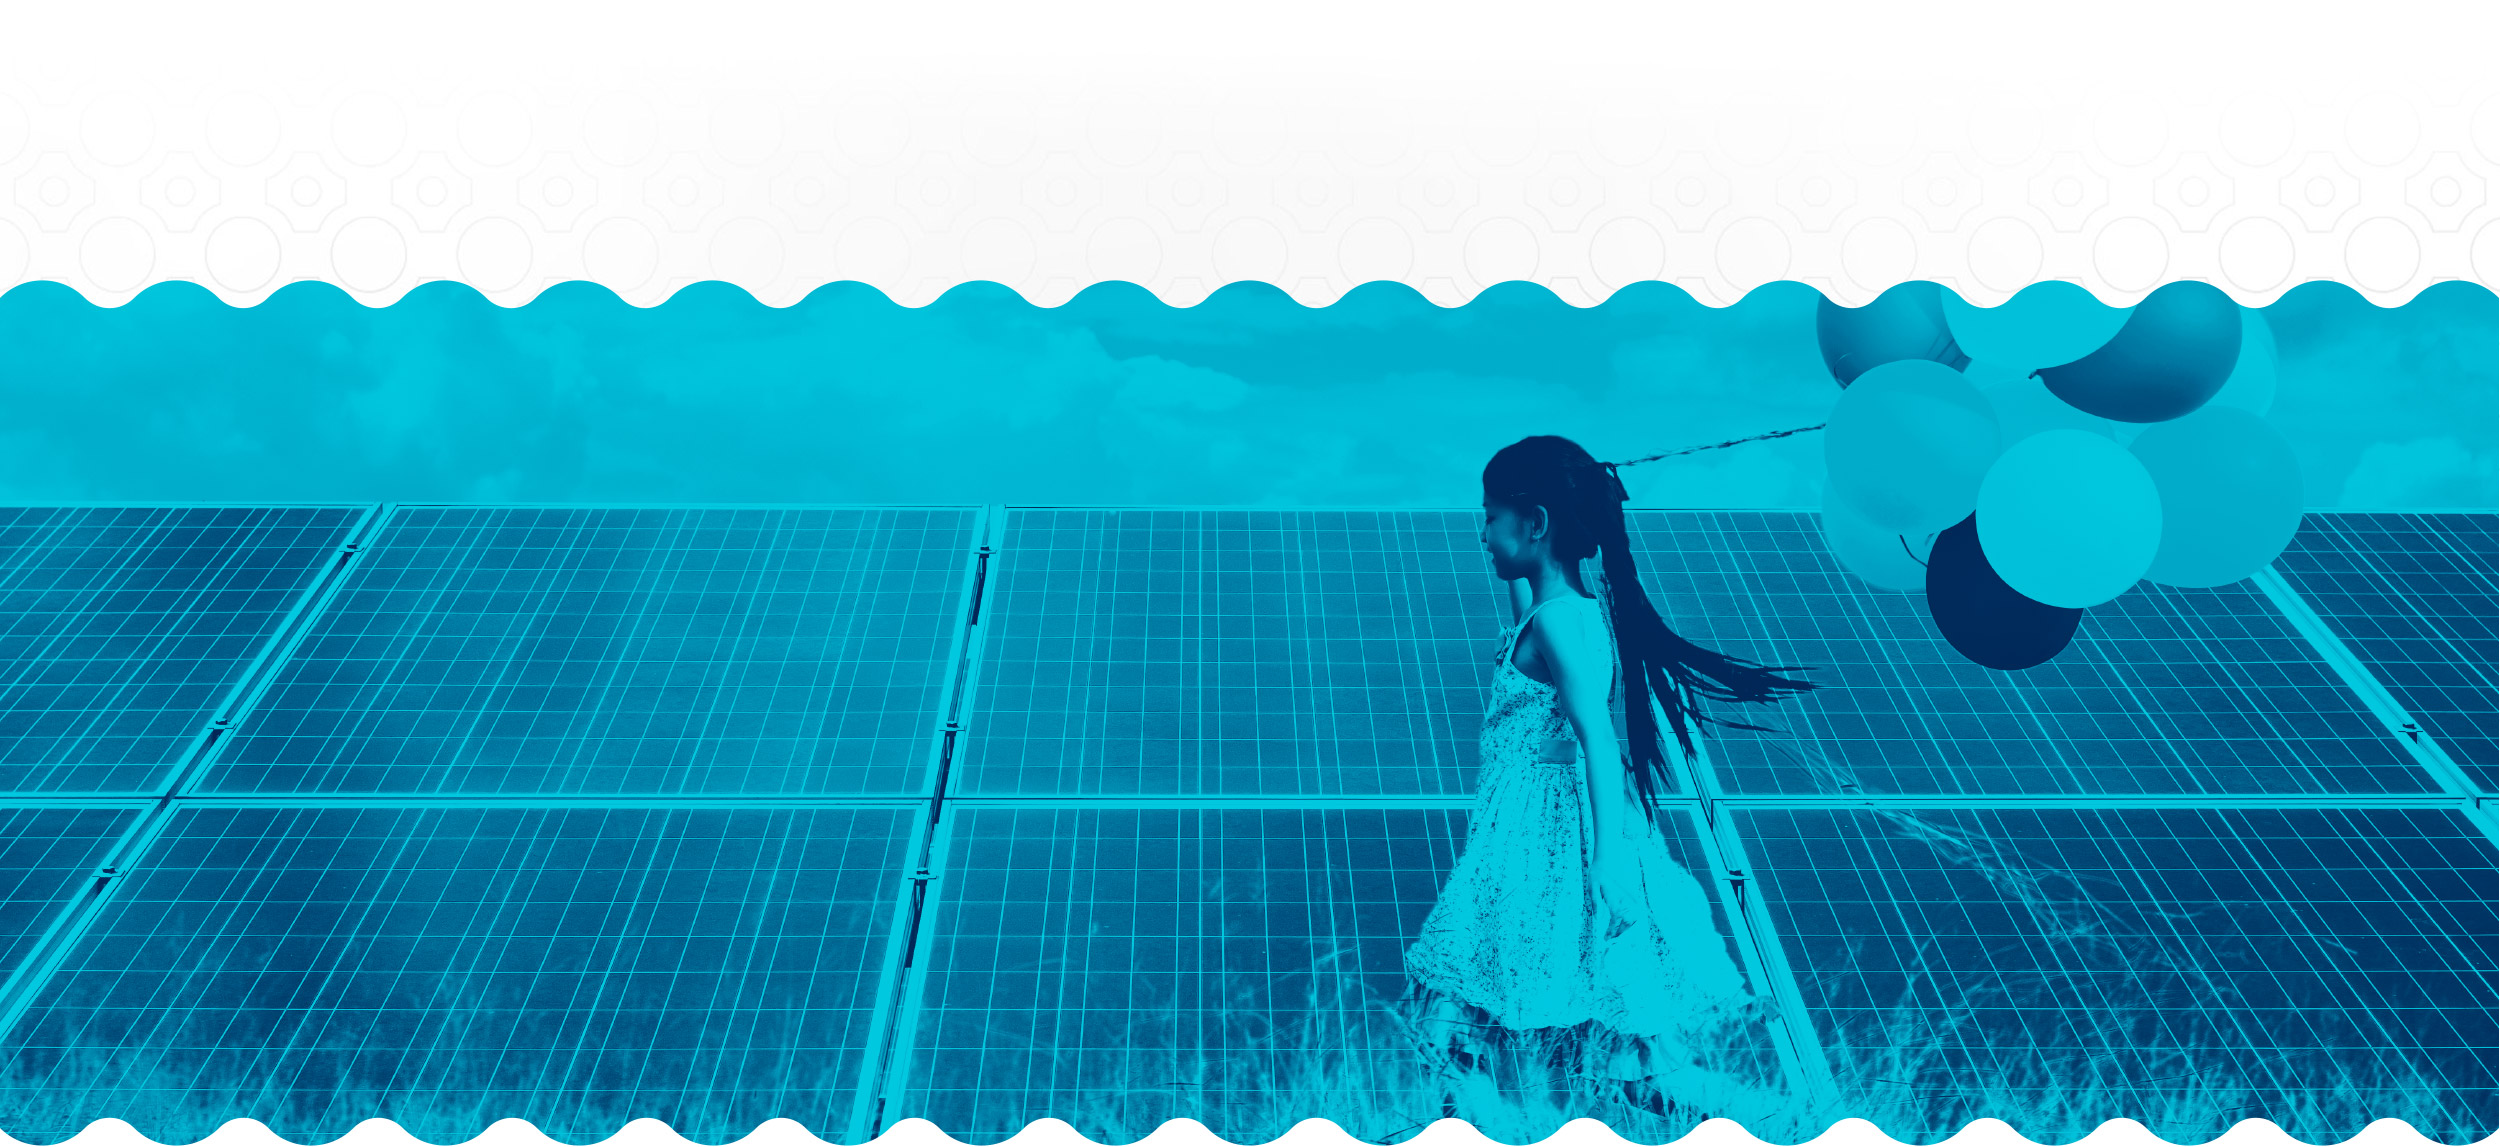 Power your future banner: A girl with balloons walking near solar panels